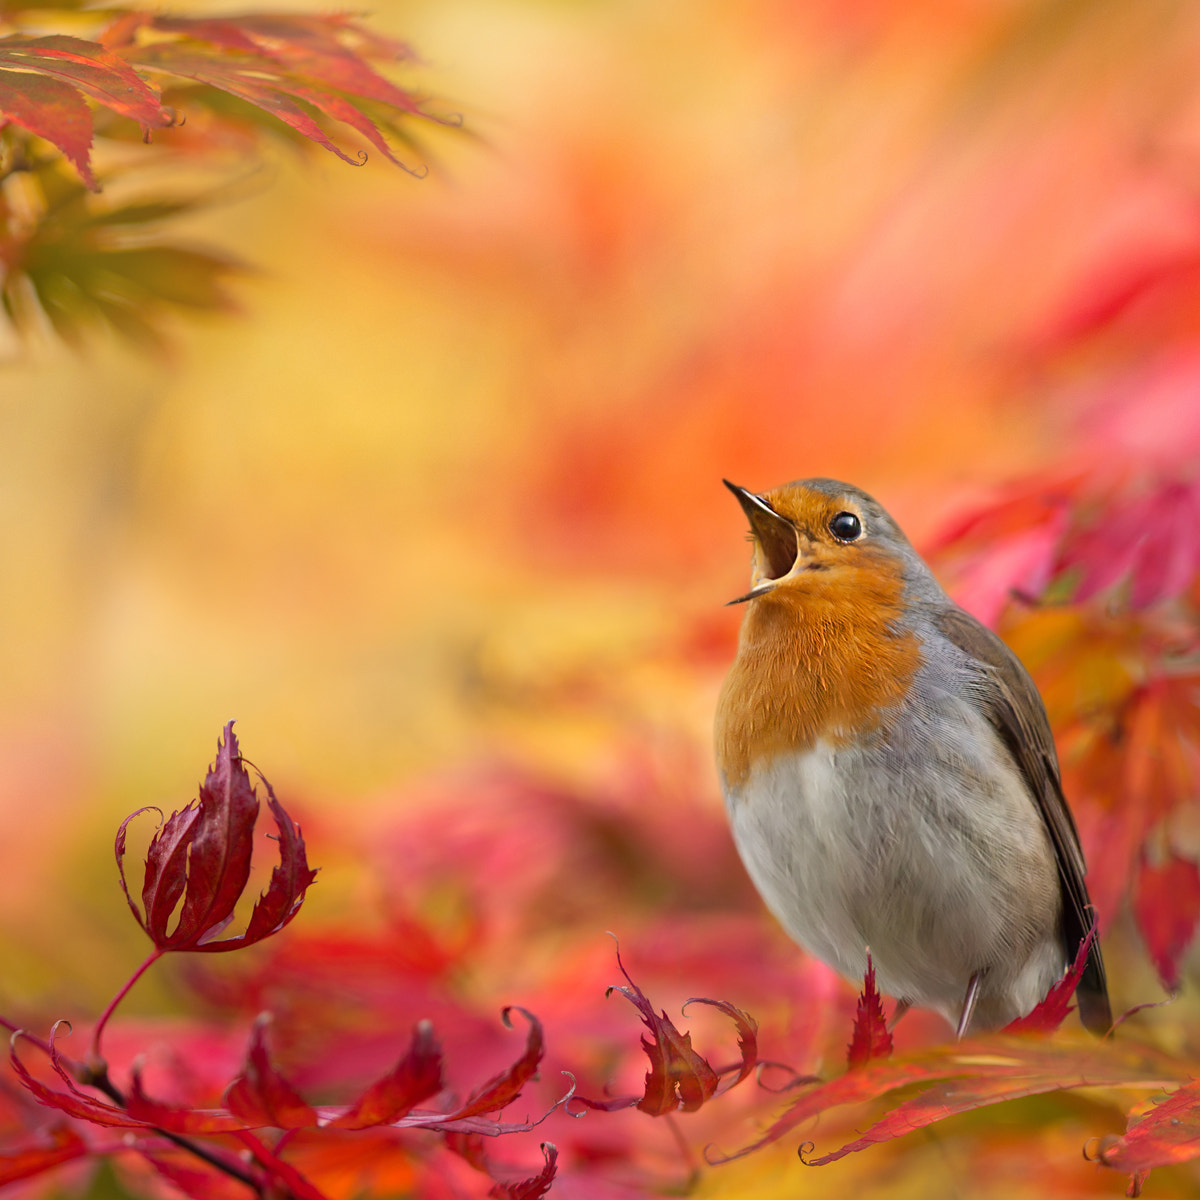 Photograph Autumn fantasy by Teuni Stevense on 500px